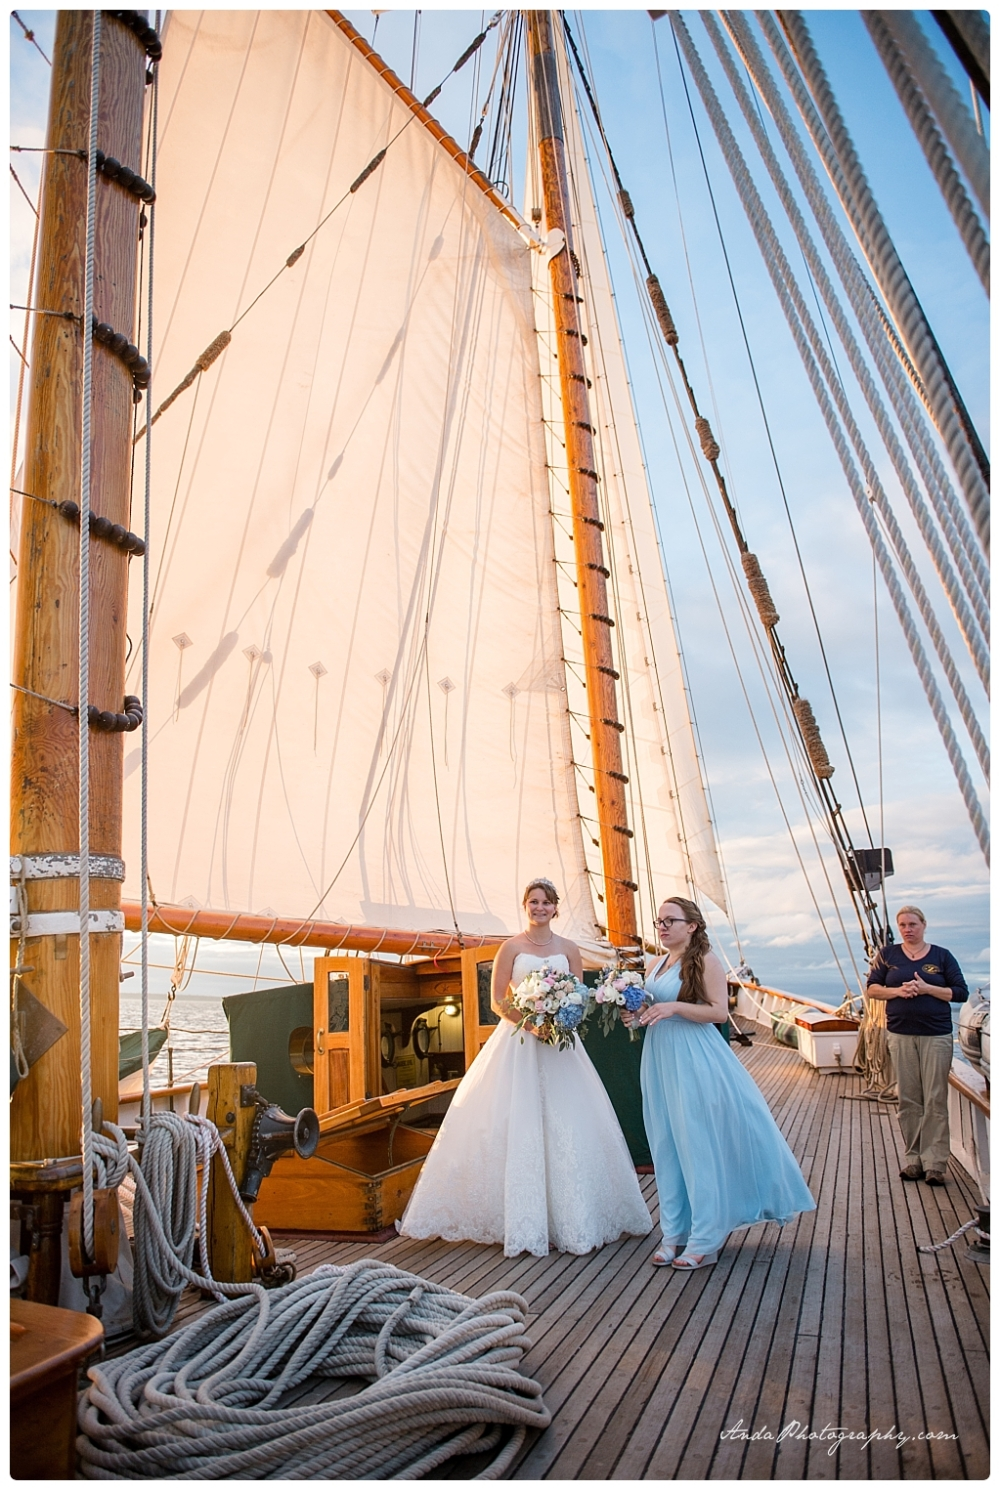 Anda Photography Bellingham wedding photographer seattle wedding photographer Schooner Zodiak Wedding photos_0036